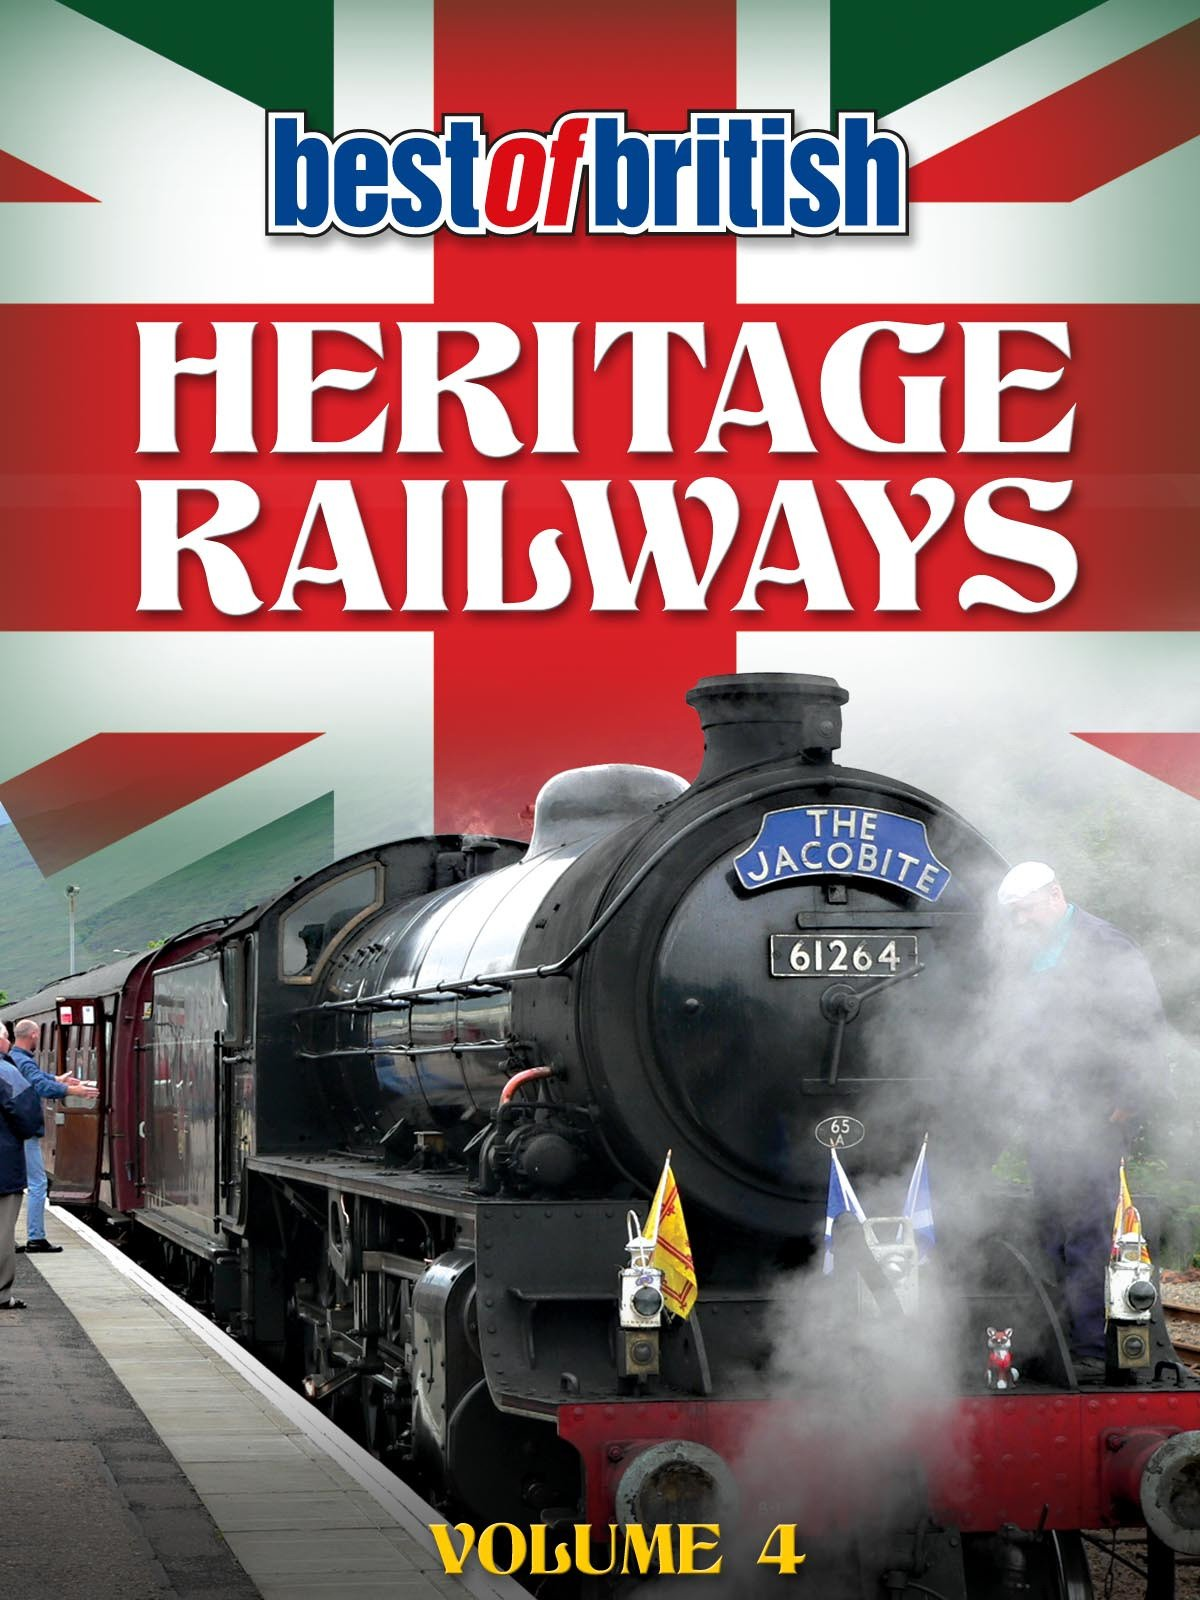 Best of British Heritage Railways Volume 4